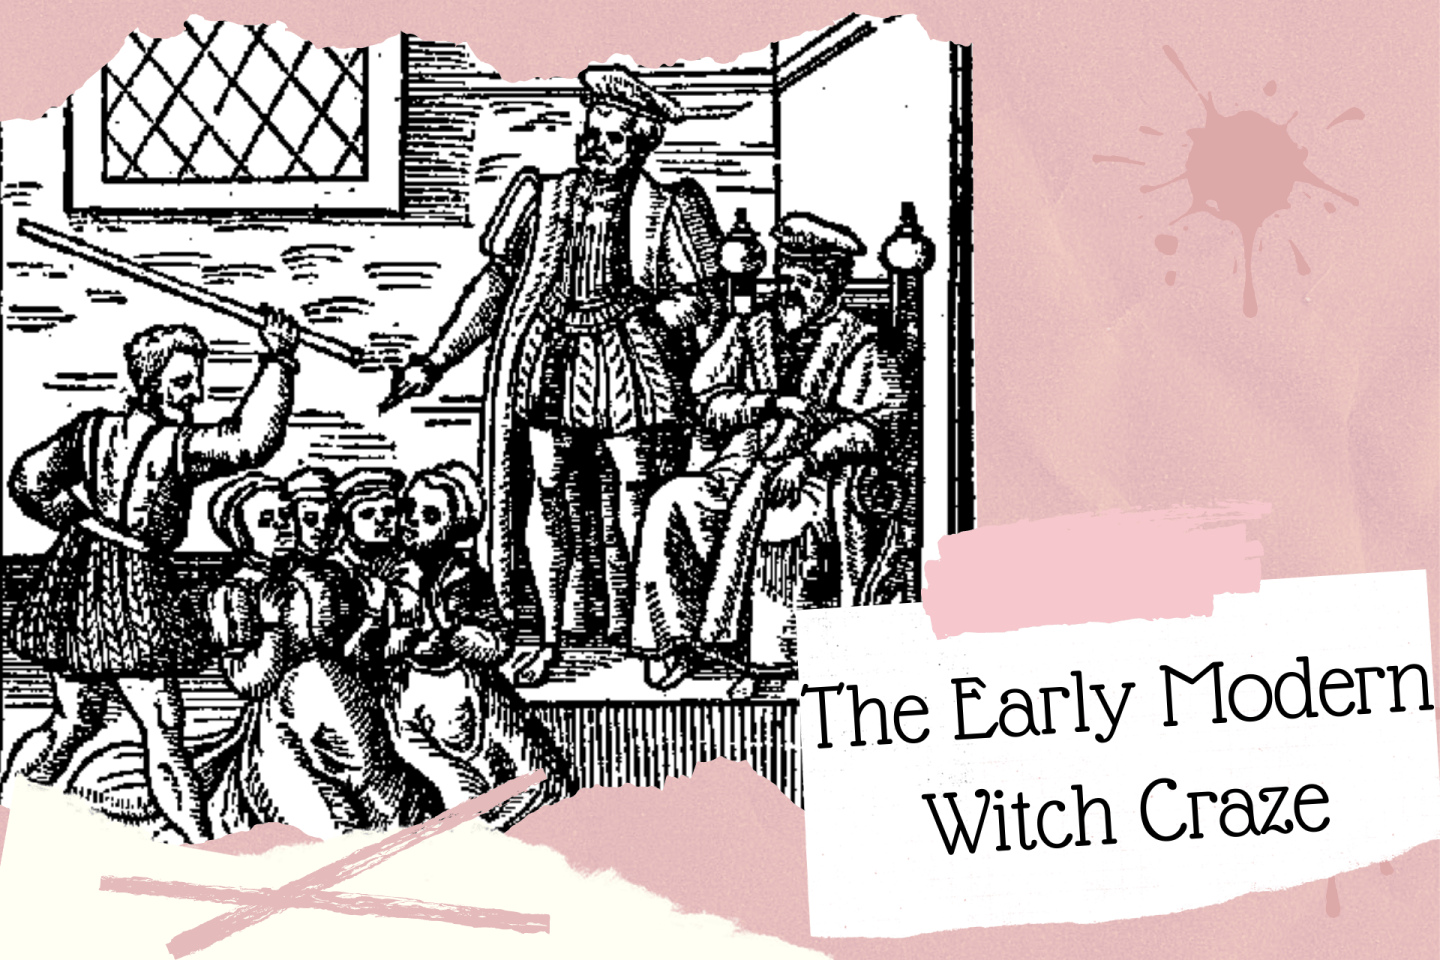 The Early Modern Witch Craze